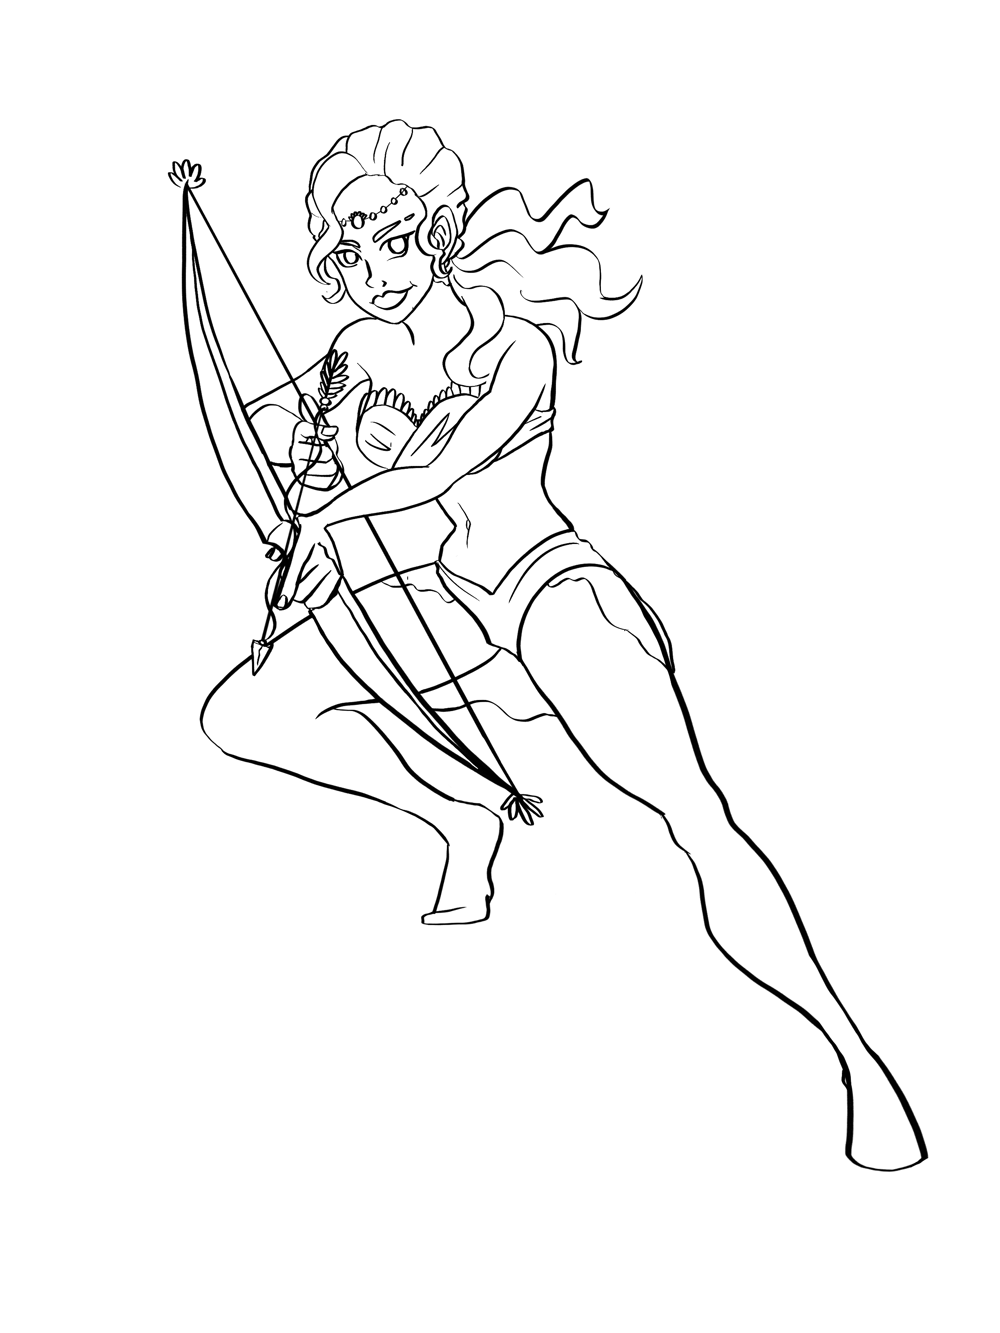 Character illustration Archer - image 1 - student project